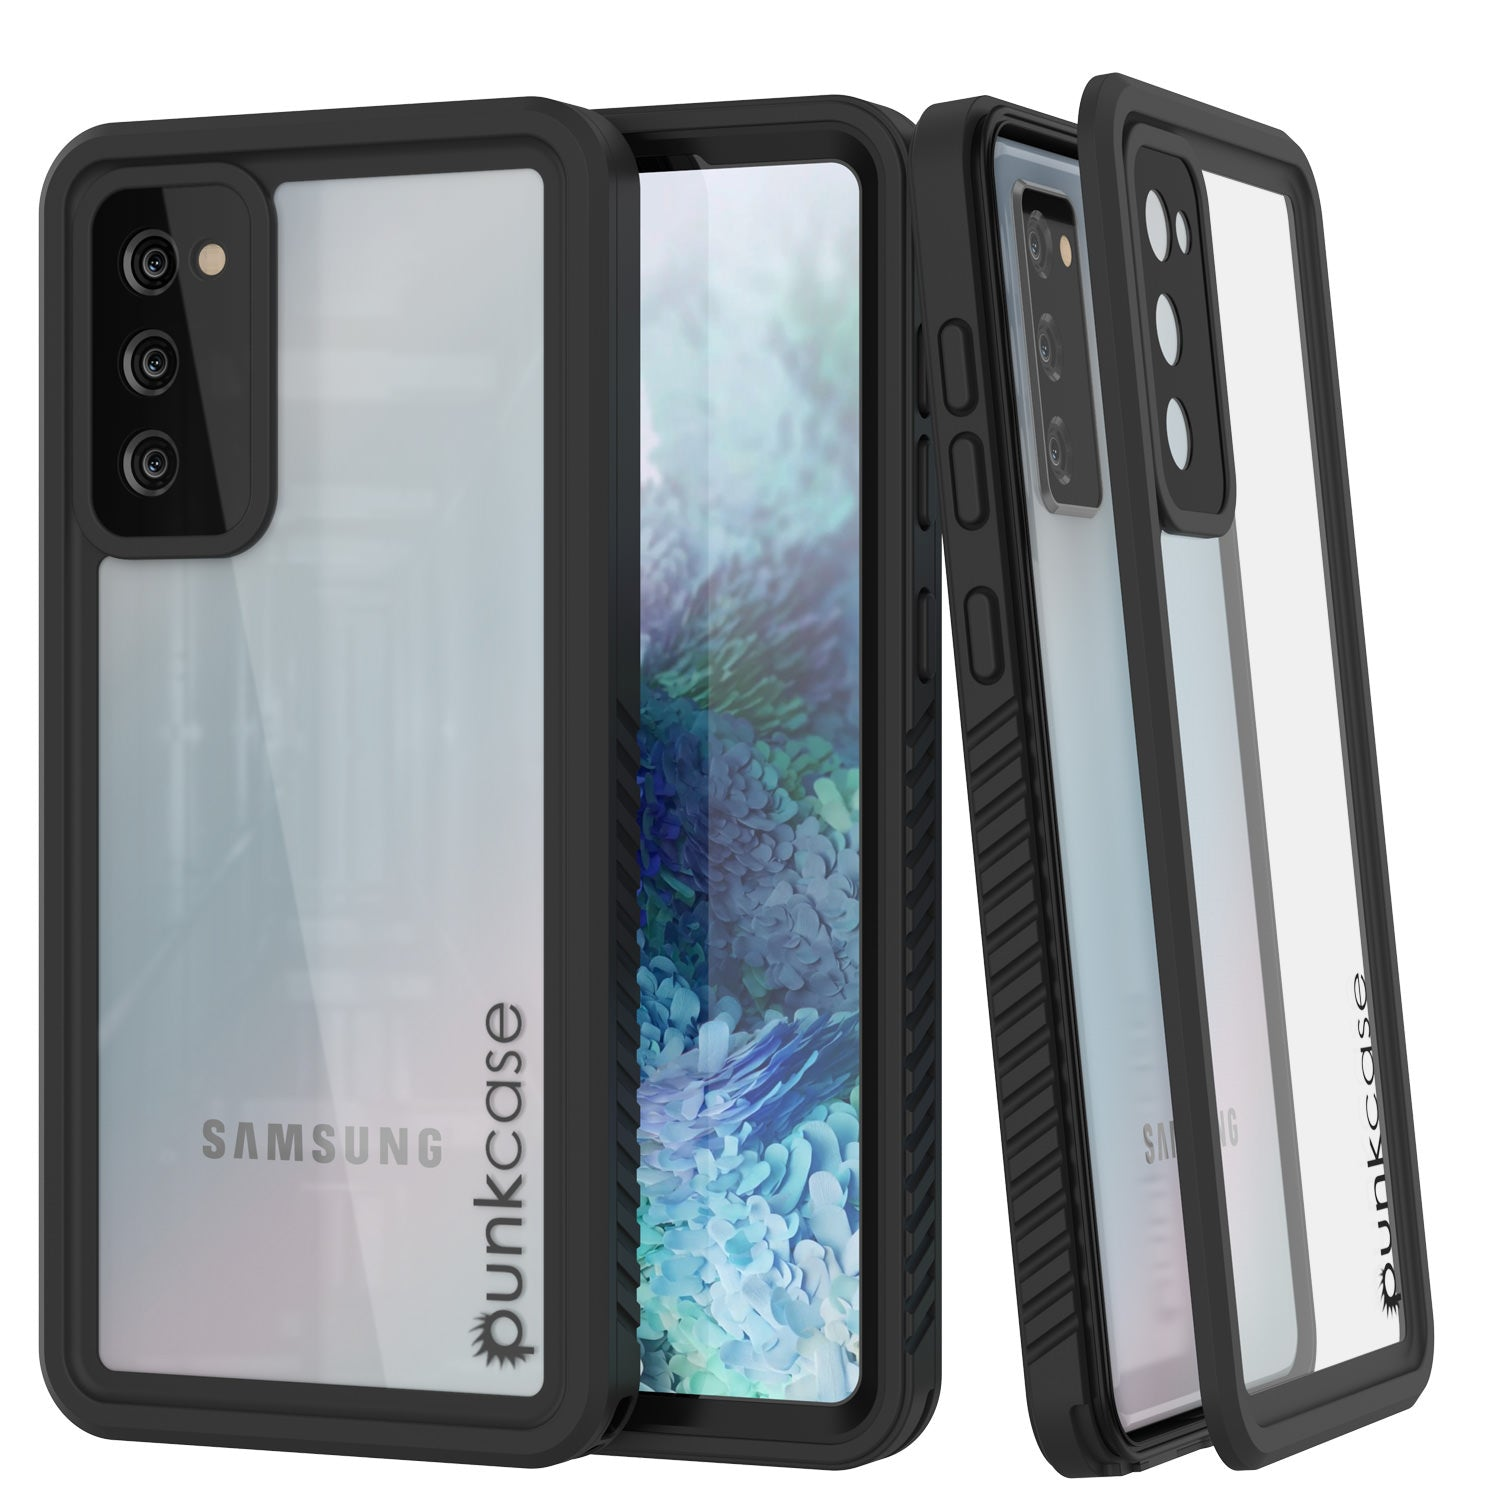 Galaxy S20 FE Water/Shockproof [Extreme Series] With Screen Protector Case [Black]